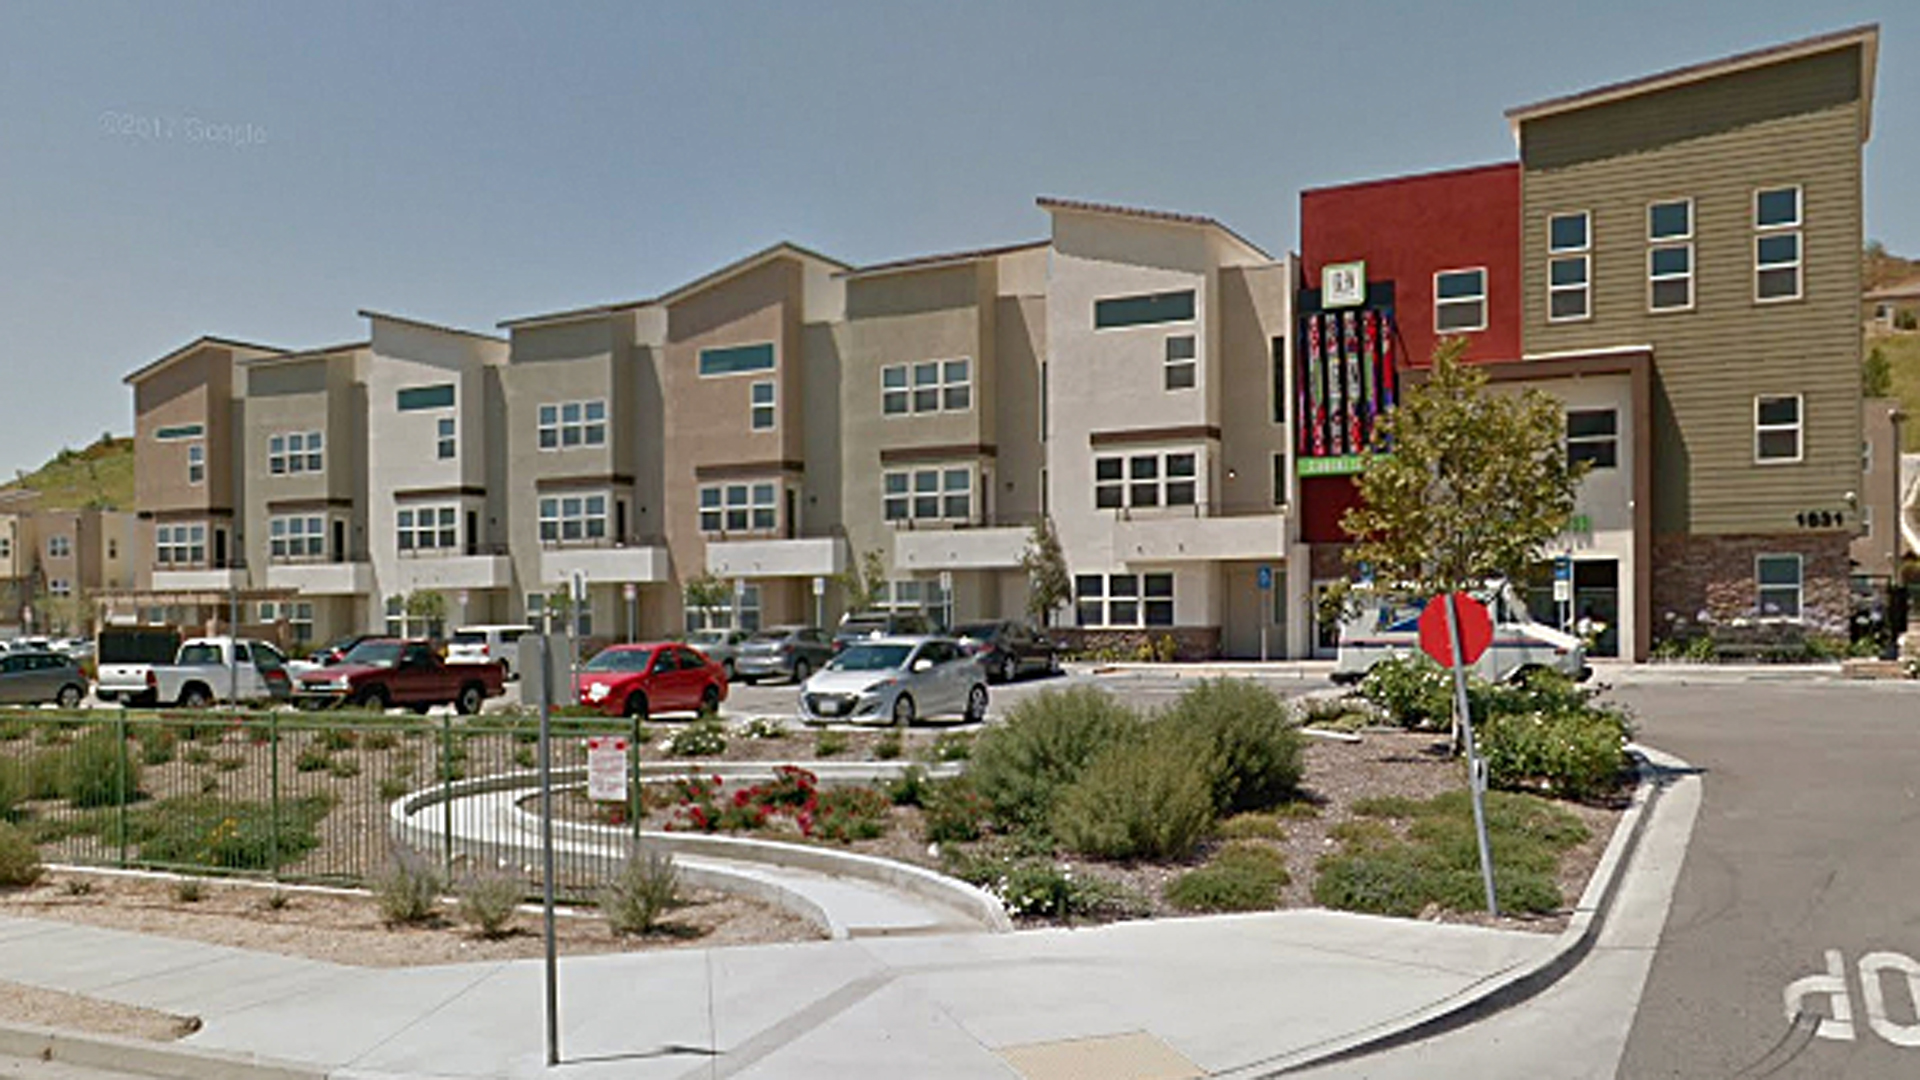 The Glen at University Park apartments are seen in this image from Google Maps.